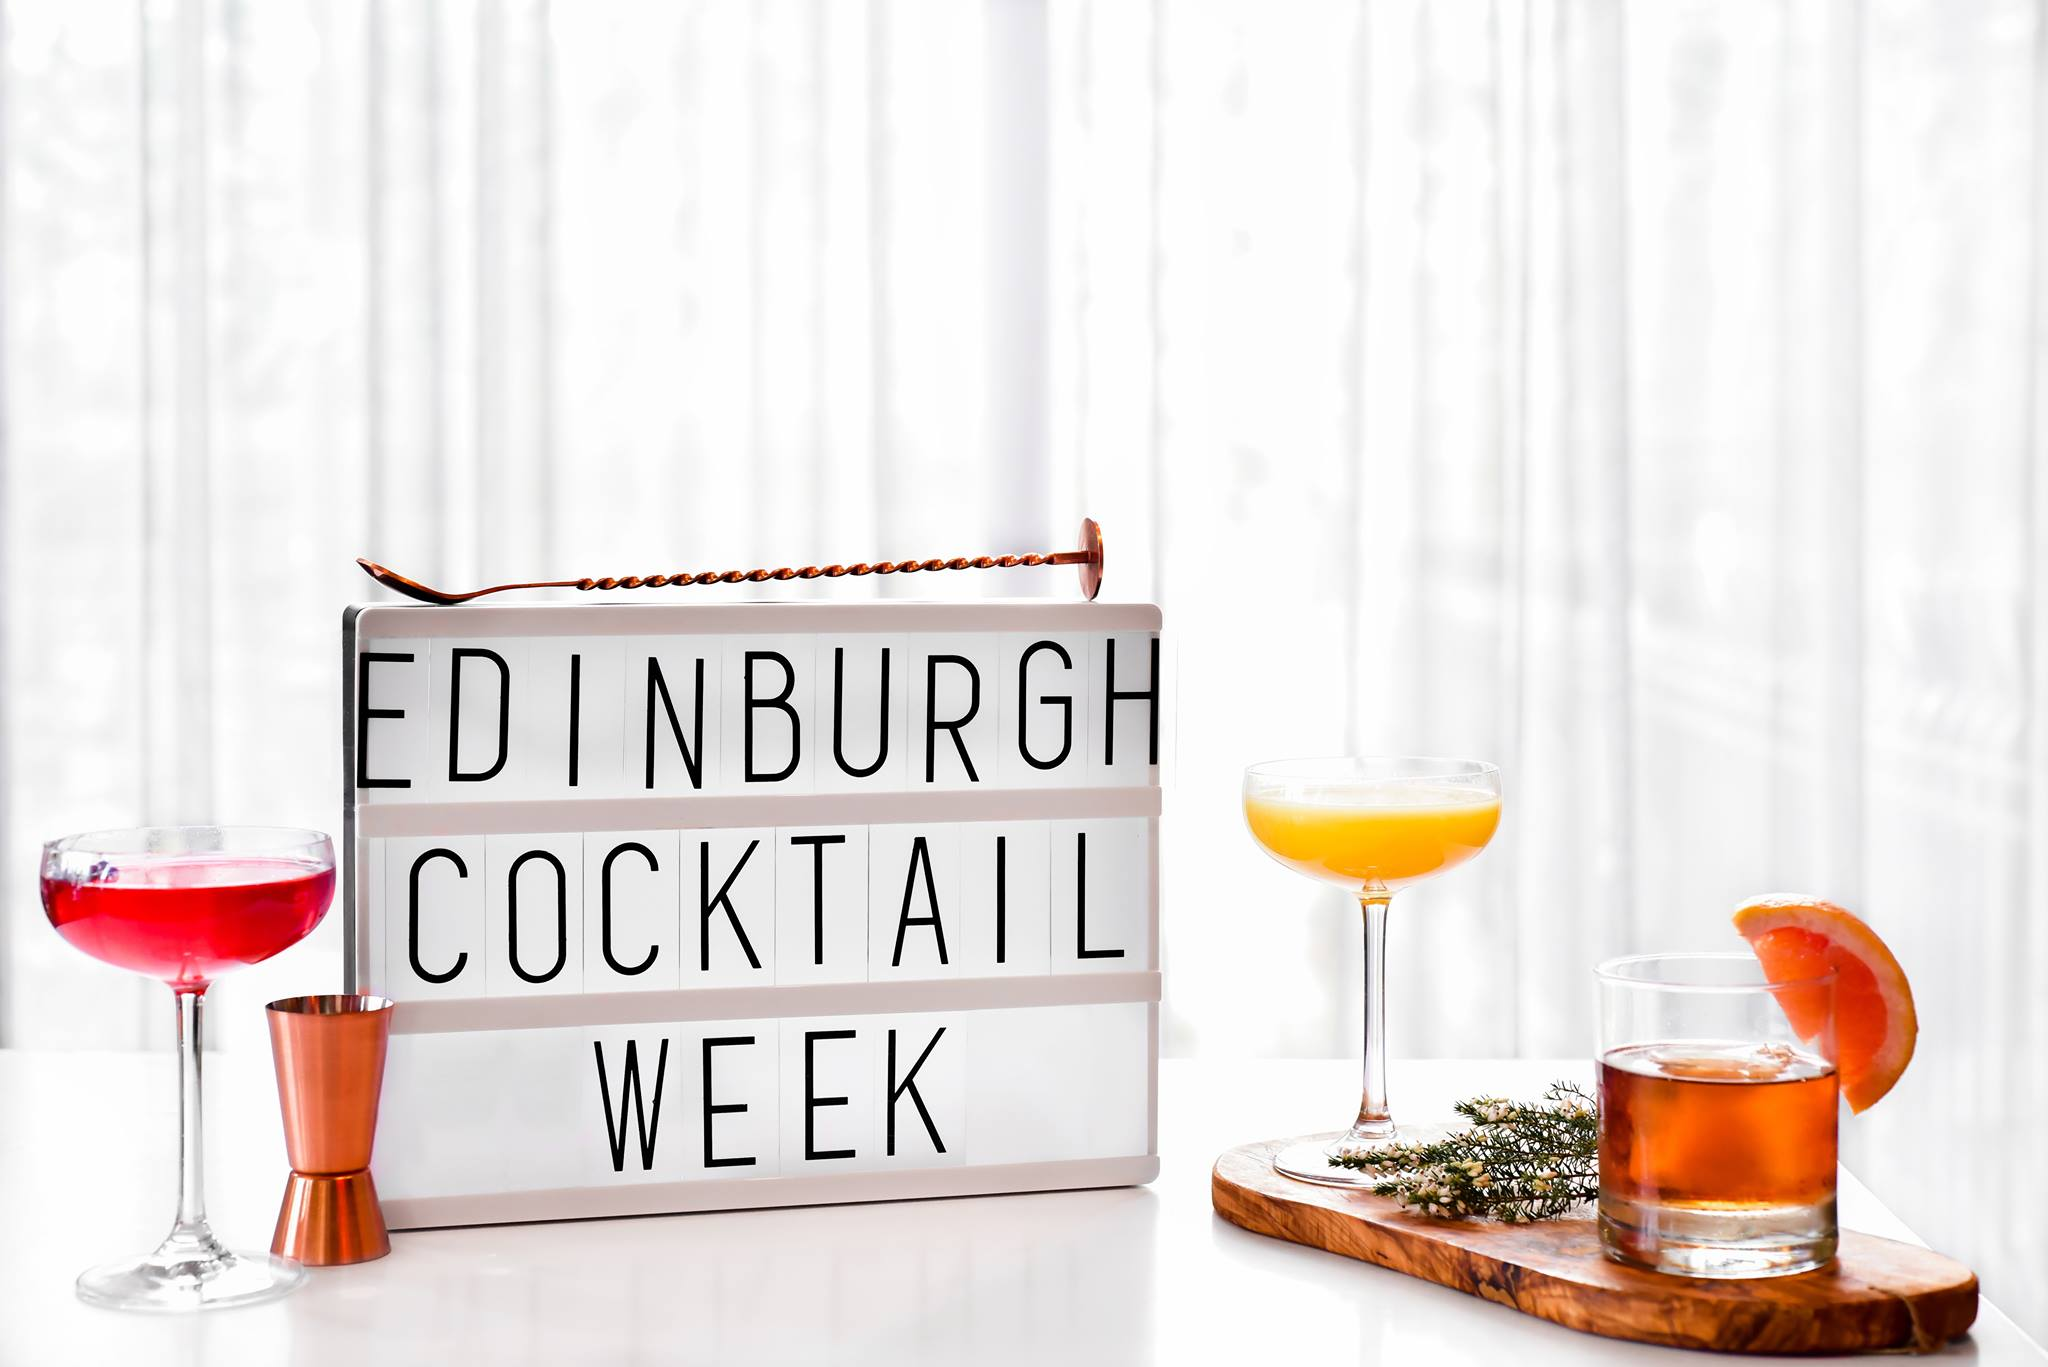 Edinburgh Cocktail week light-box and cocktail